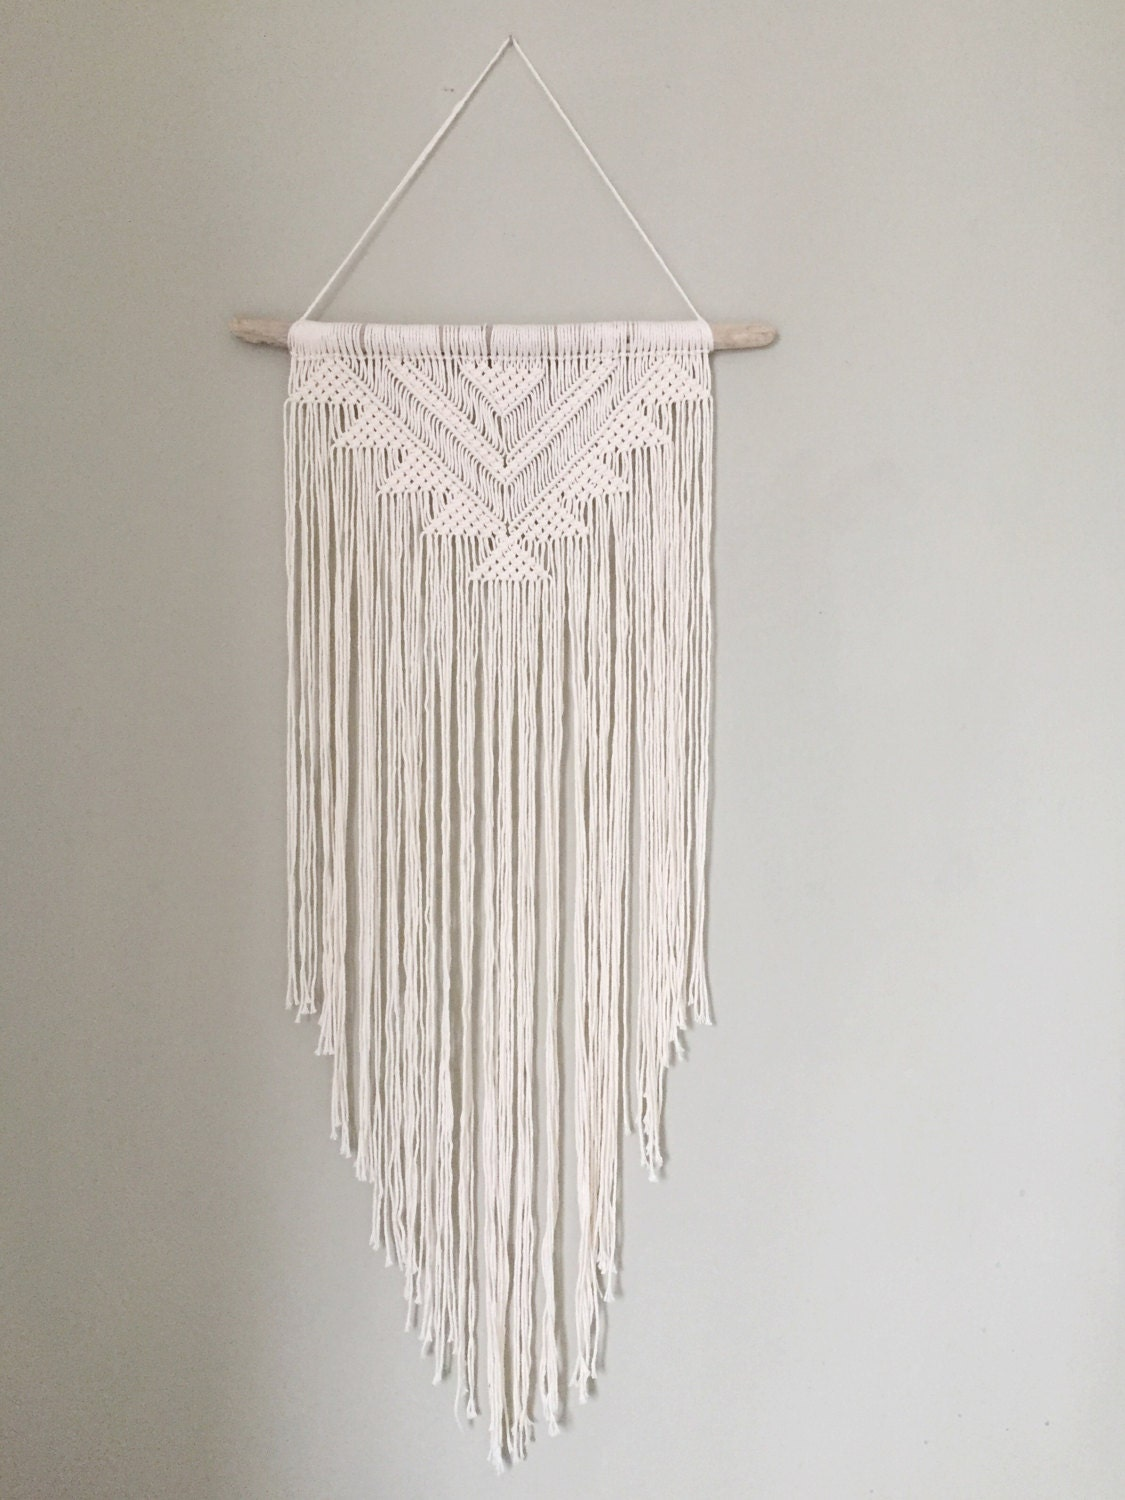 Handmade macrame wall hanging wall decor boho chic wall art for Wall hanging